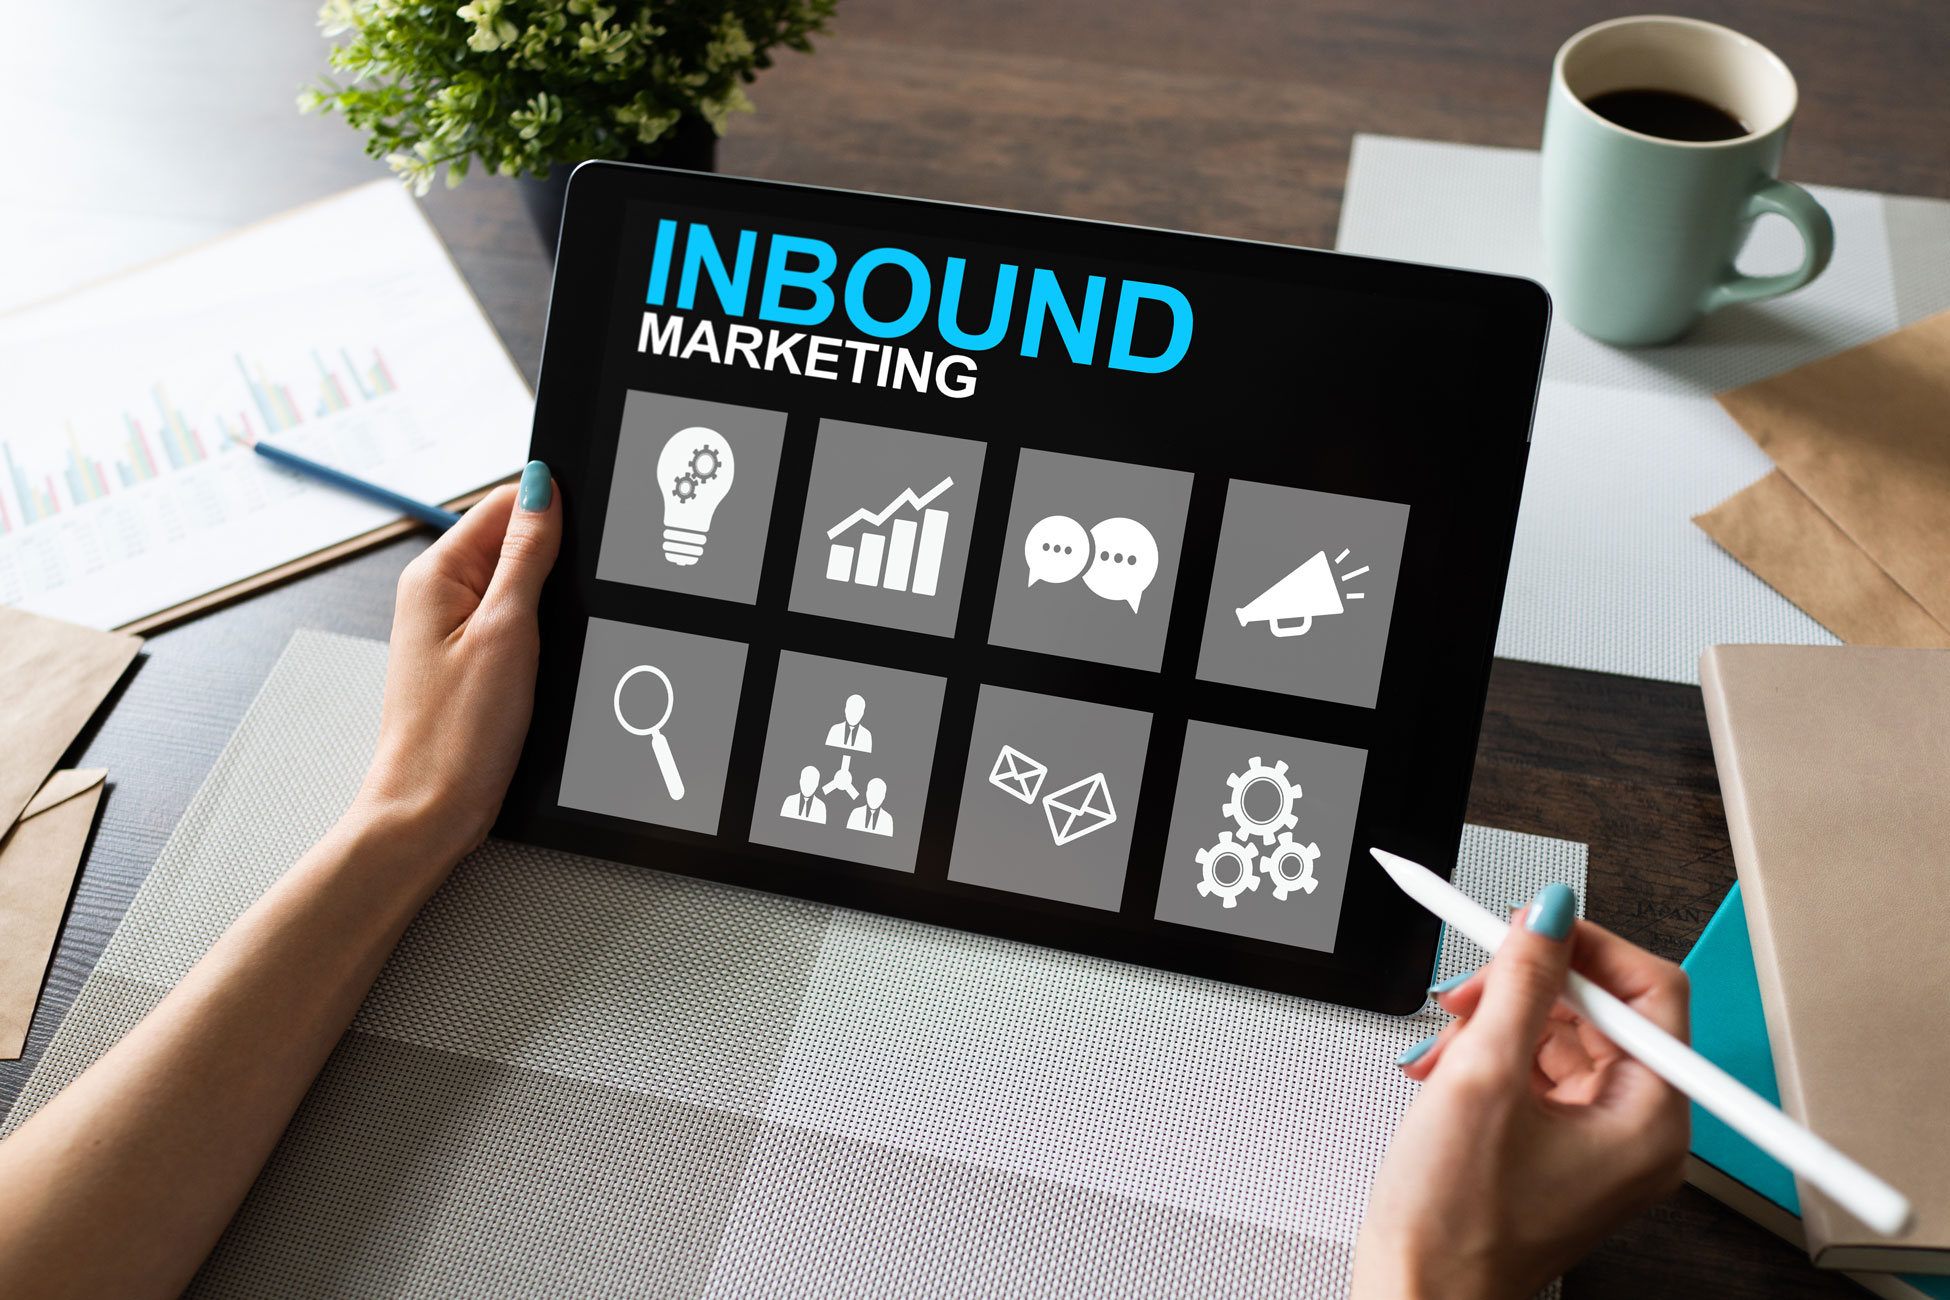 Inbound-Service Up-Cross-Selling